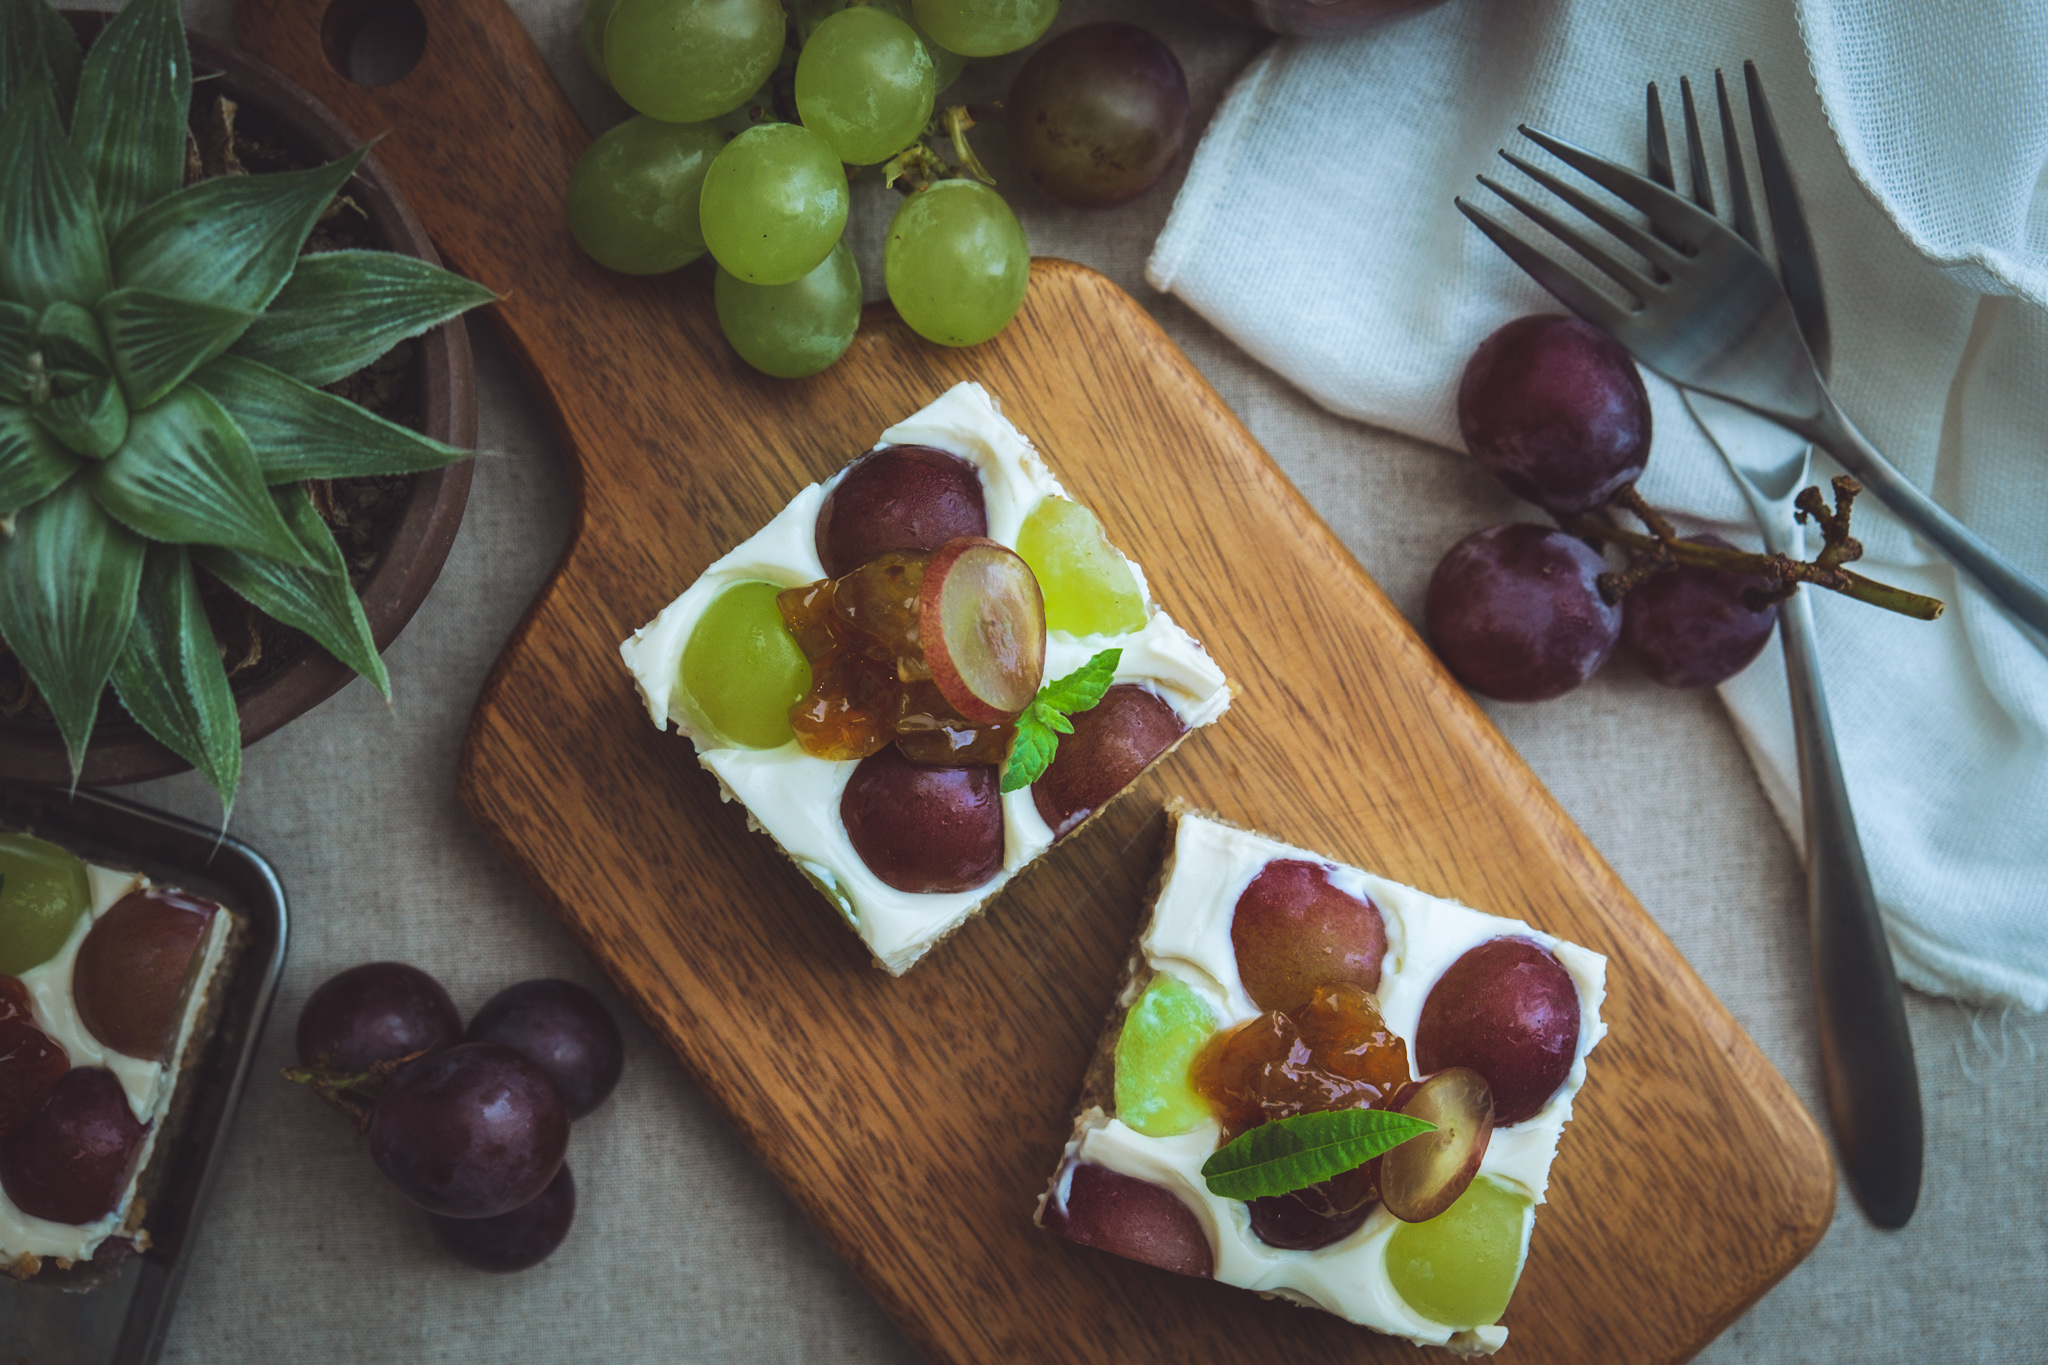 Collaboration with BIO Marche Vol.12 – 有機巨峰とネオマスカットのヨーグルトケーキ Vegan and gluten free Kyoho grapes and Muscat grapes cake with soy yogurt cream